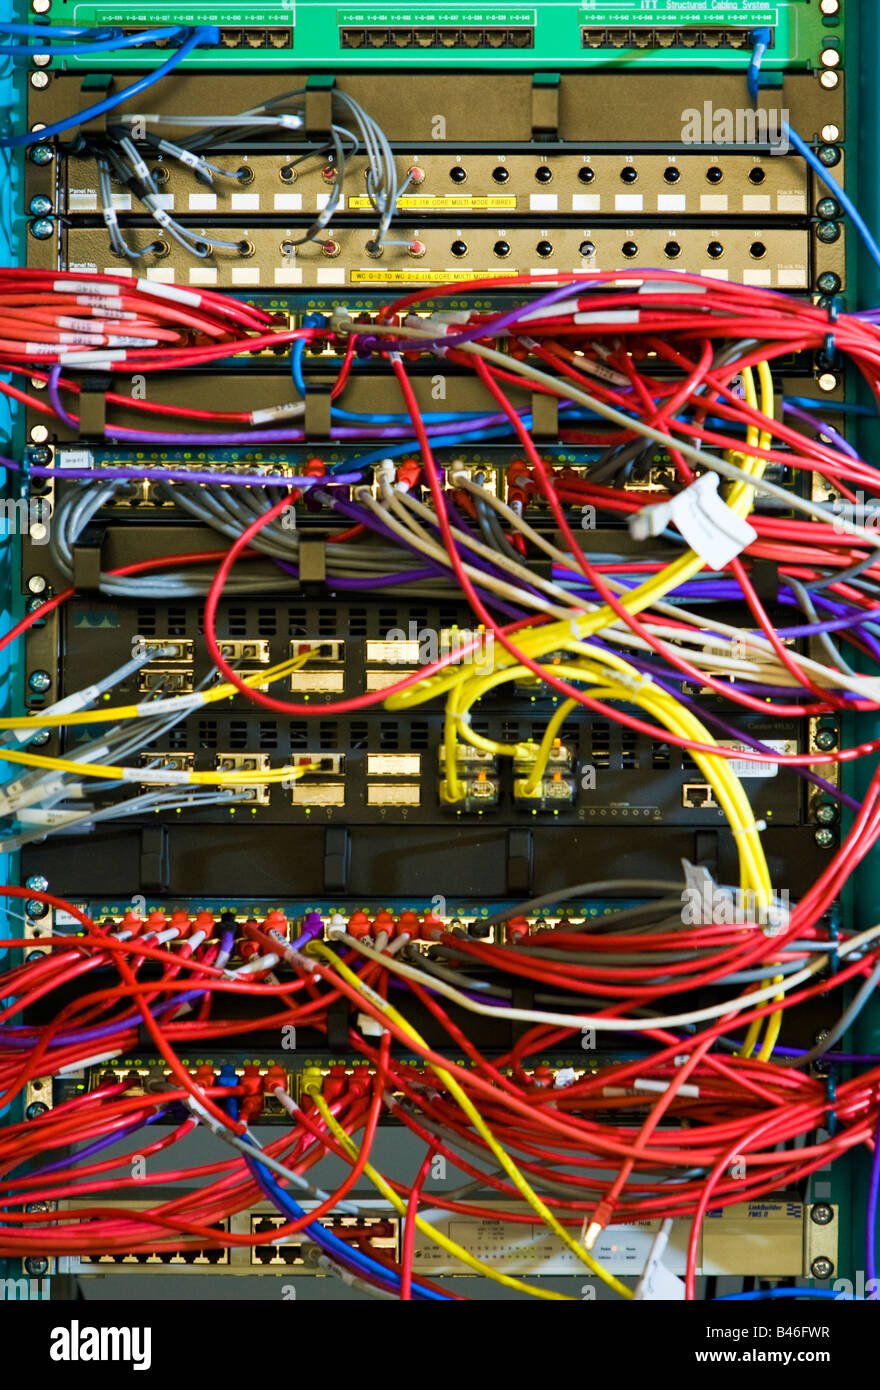 medium resolution of computer cables ethernet network rack server connection stock image